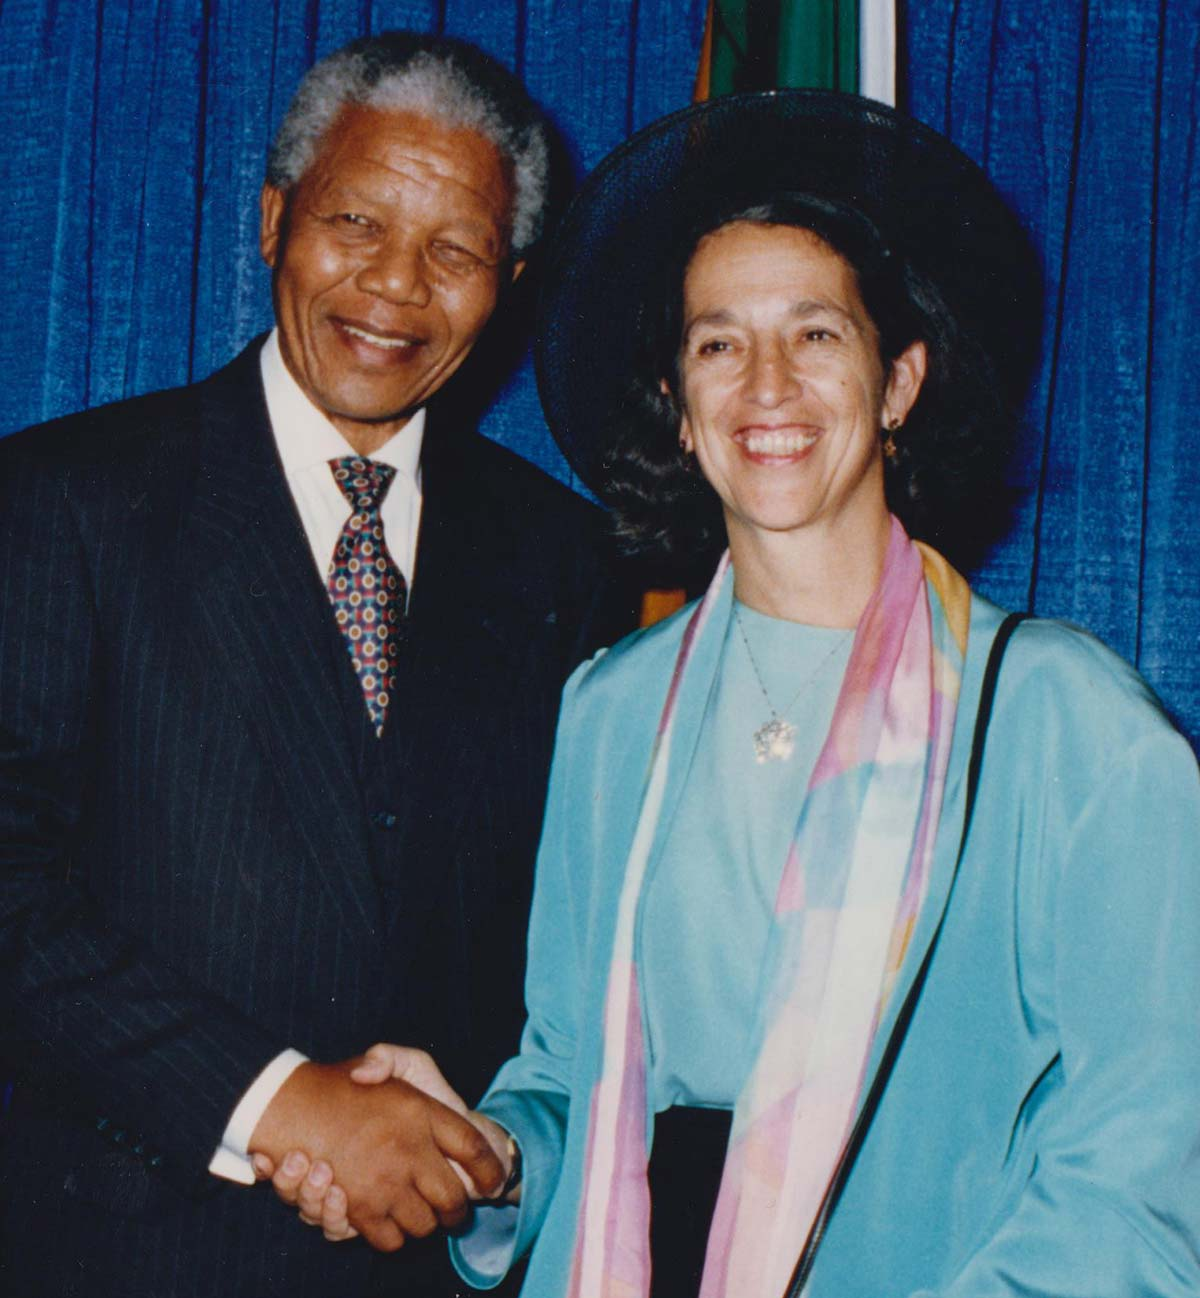 Ruth Messinger meeting the late anti-apartheid activist Nelson Mandela at New York City Hall after his 1990 release from 27 years in prison.